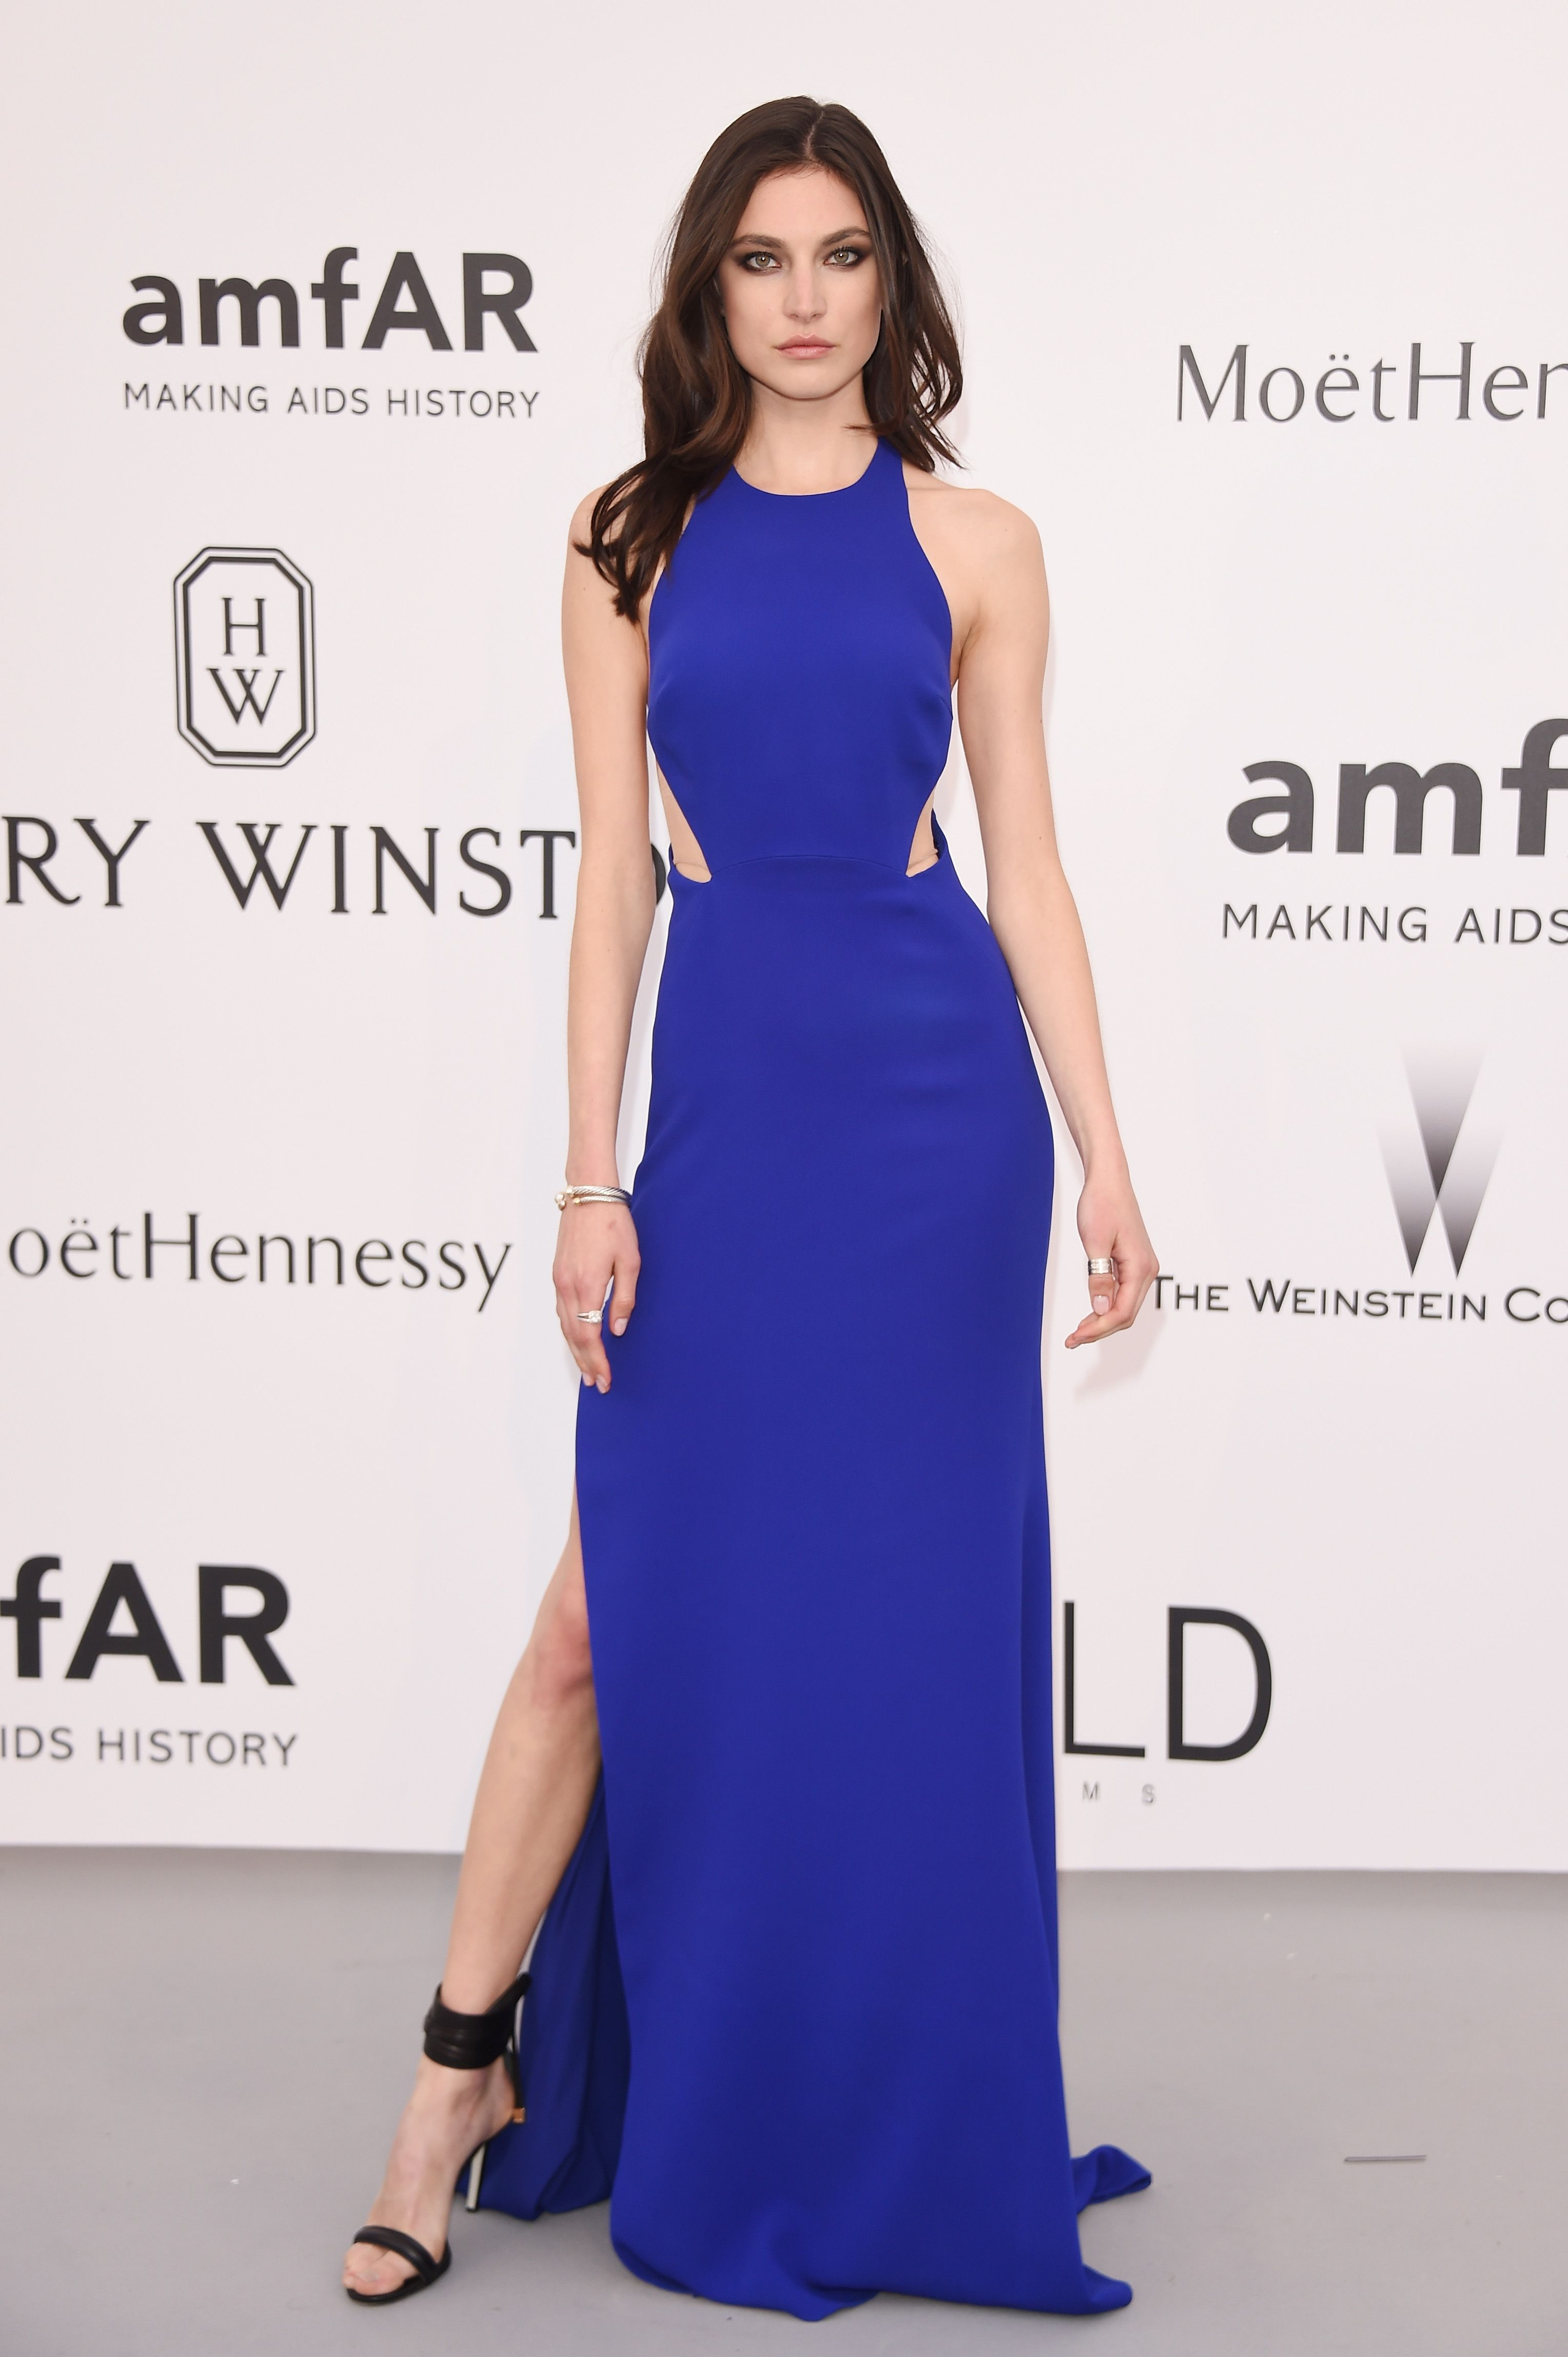 67 Red Carpet Looks From the amfAR Gala | Festival de cannes, Cannes ...